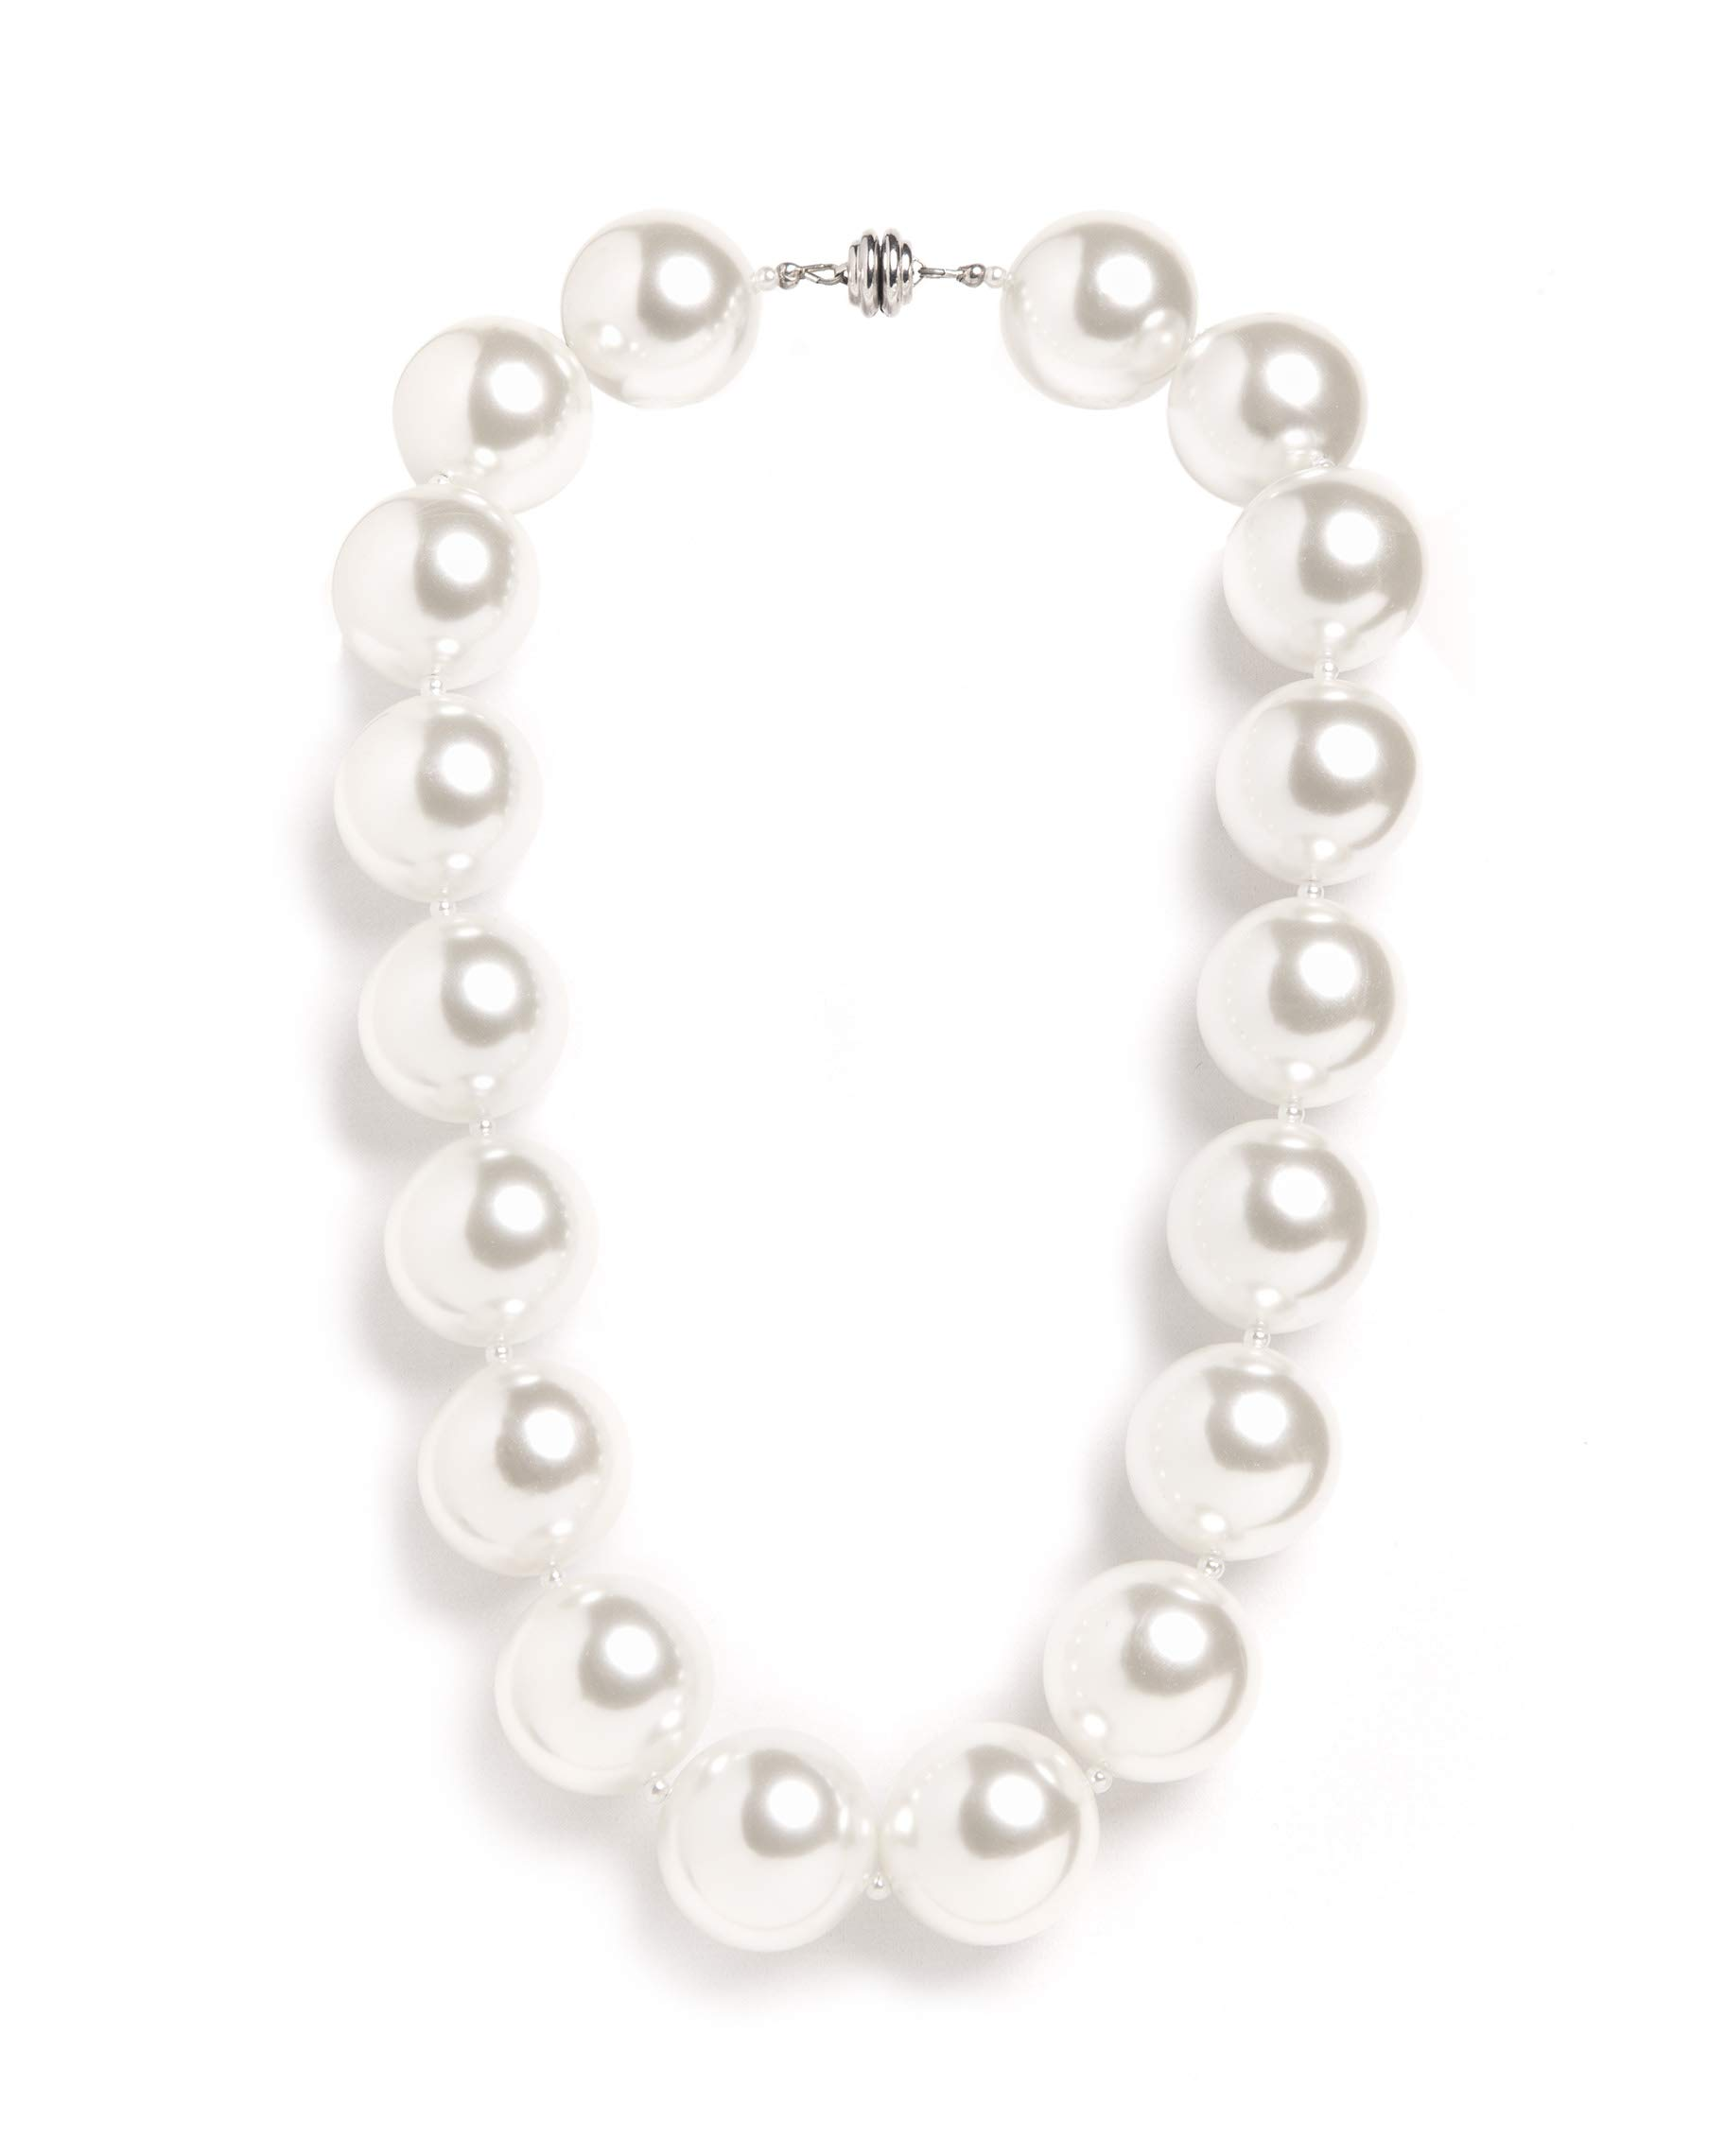 Hot Girls Pearls Ivory White 18'' Cooling Necklace | Stylish Way to Stay Cool While Looking Hot | Free Insulated Travel Pouch Included with Every Item by Hot Girls Pearls Costume Jewelry